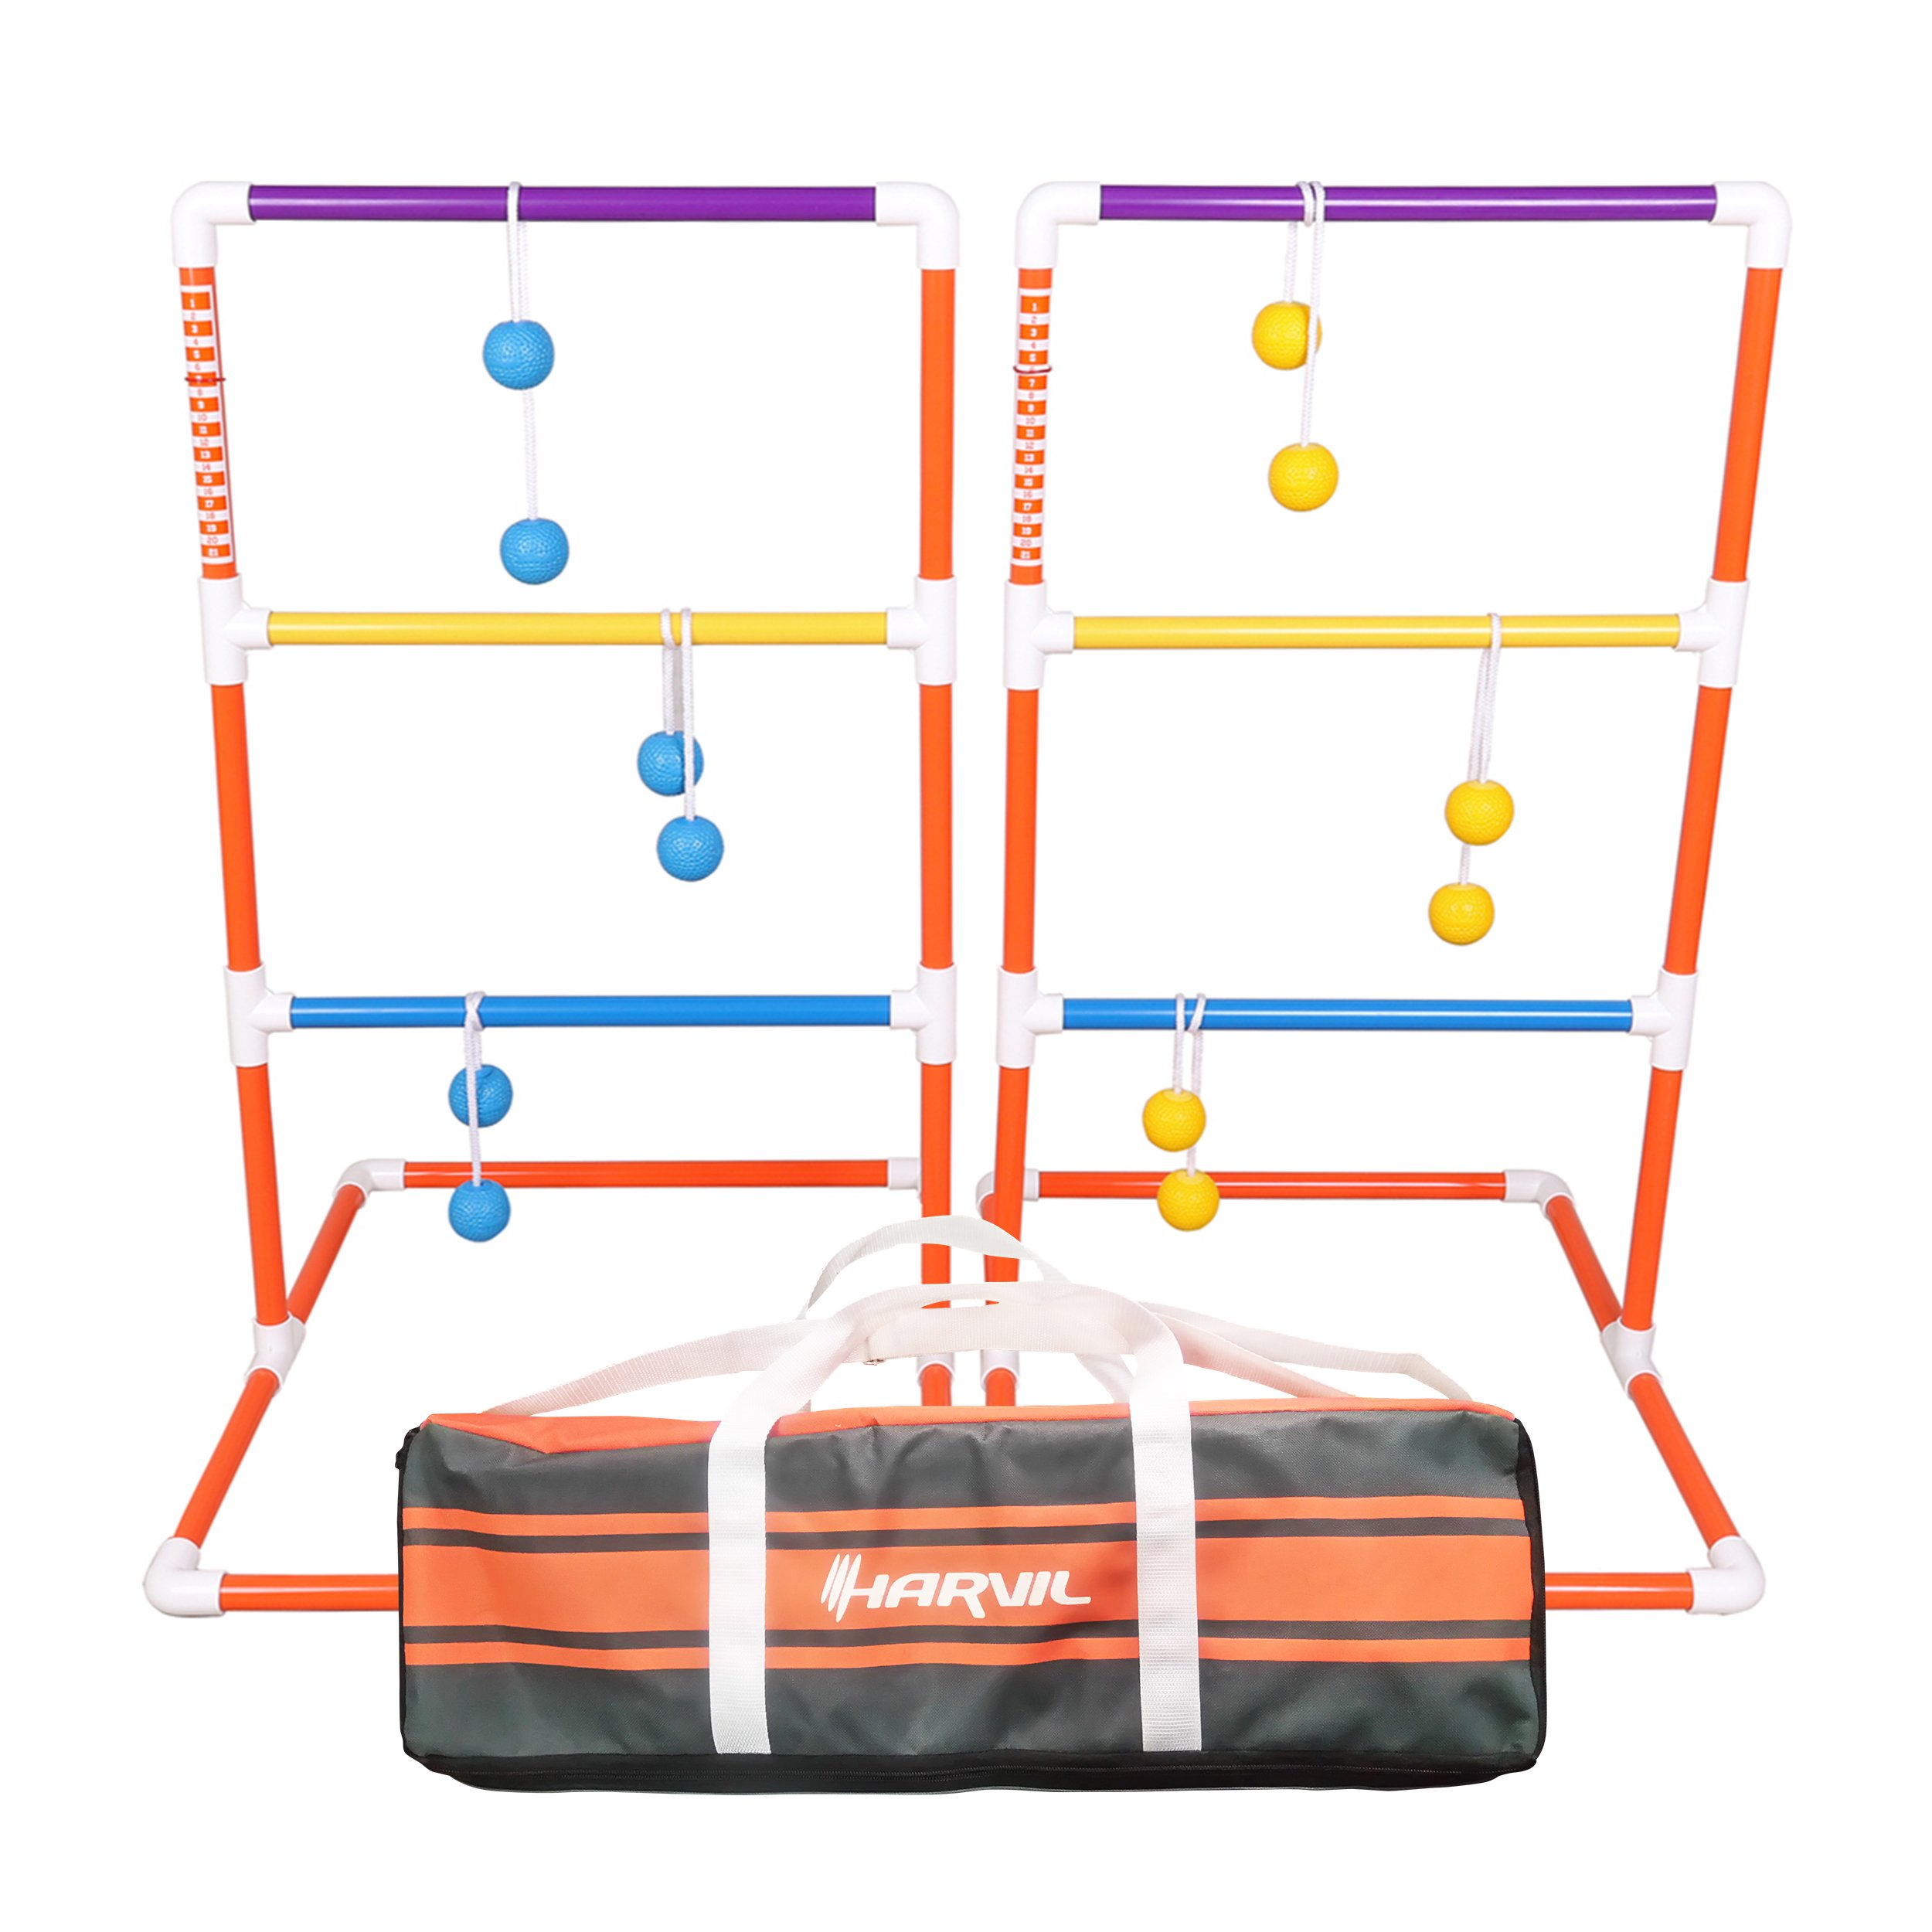 Harvil Premium Ladder Toss Game Set. Includes Golf Bolas, 2 Targets, and Carrying Case by Harvil